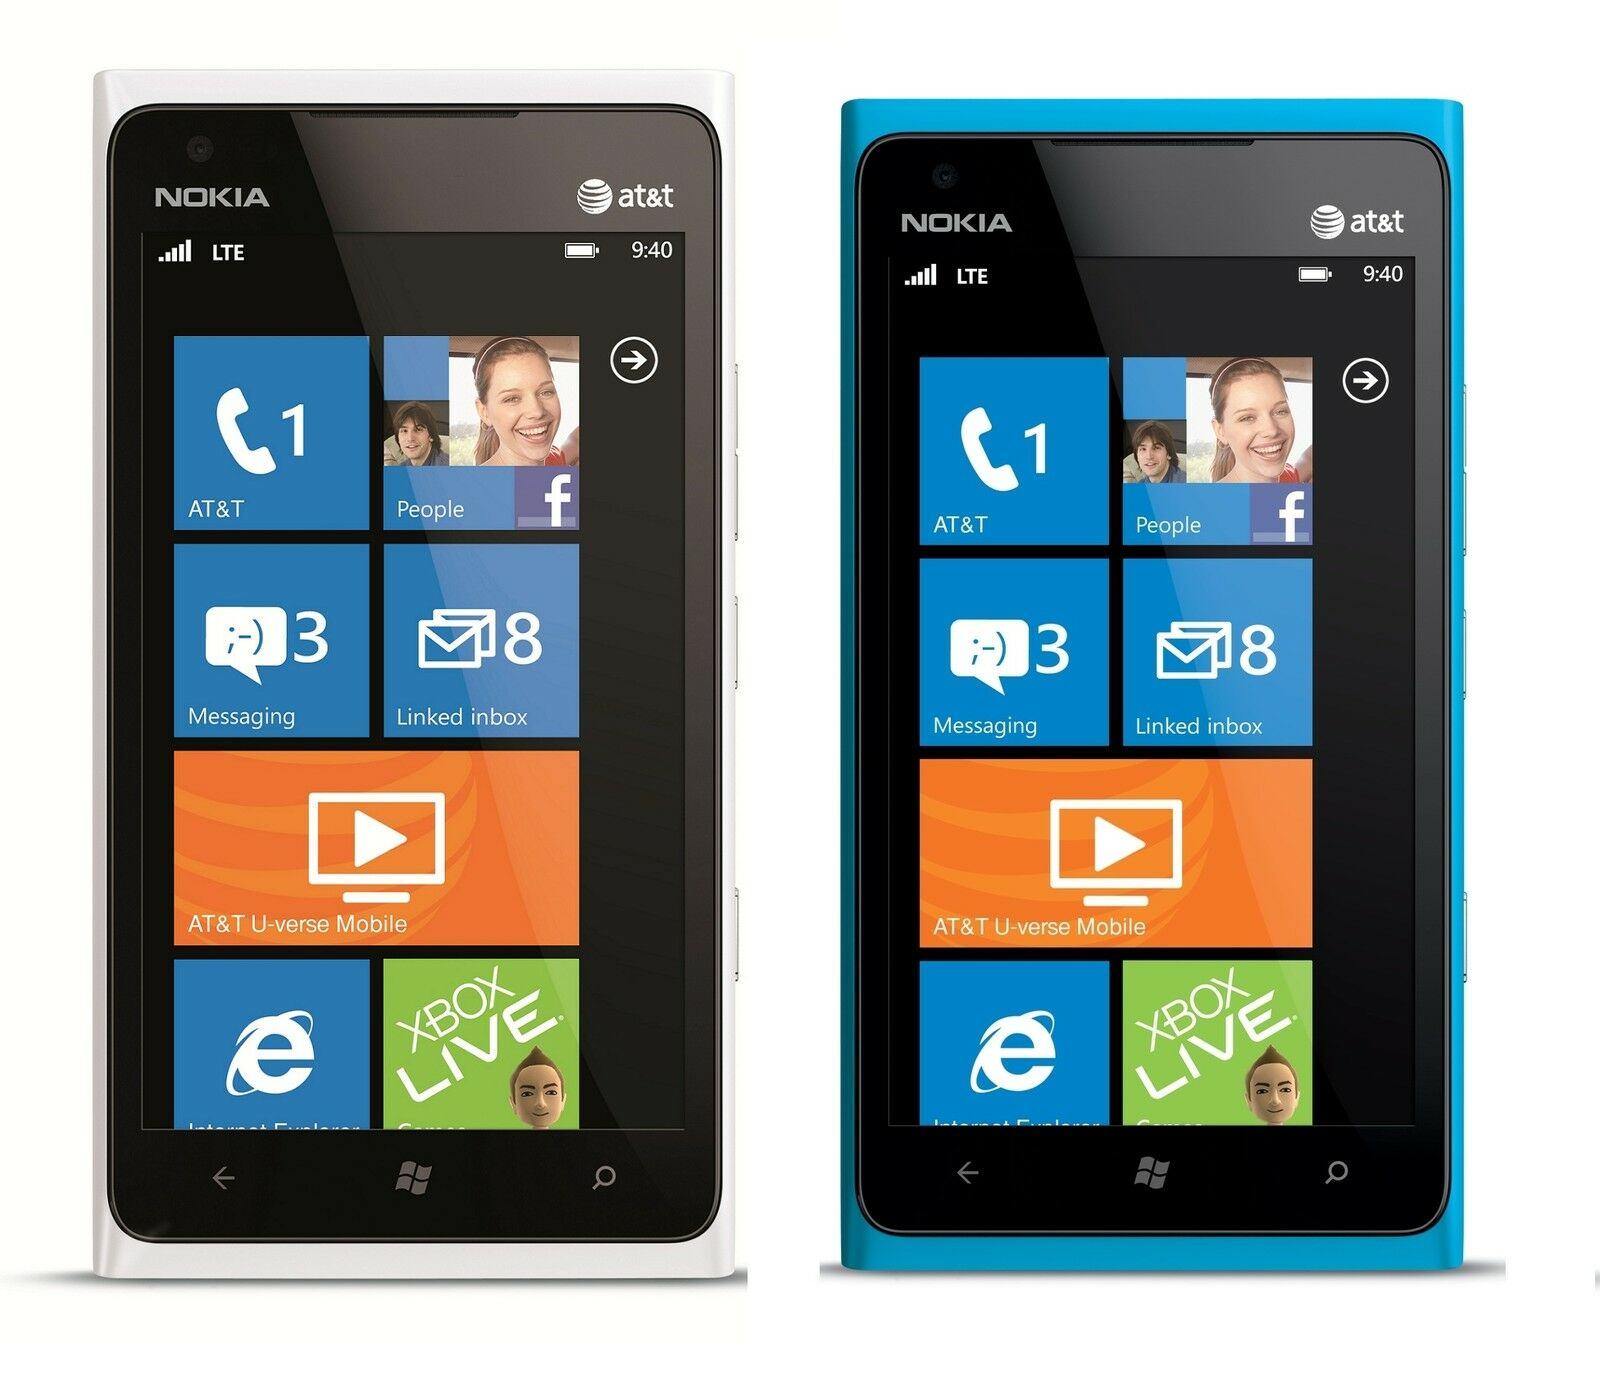 How To Enable Java Script For Windows 10 39 New Nokia Lumia 900 16gb  Unlocked Gsm Phone Windows 78 Os 8mp